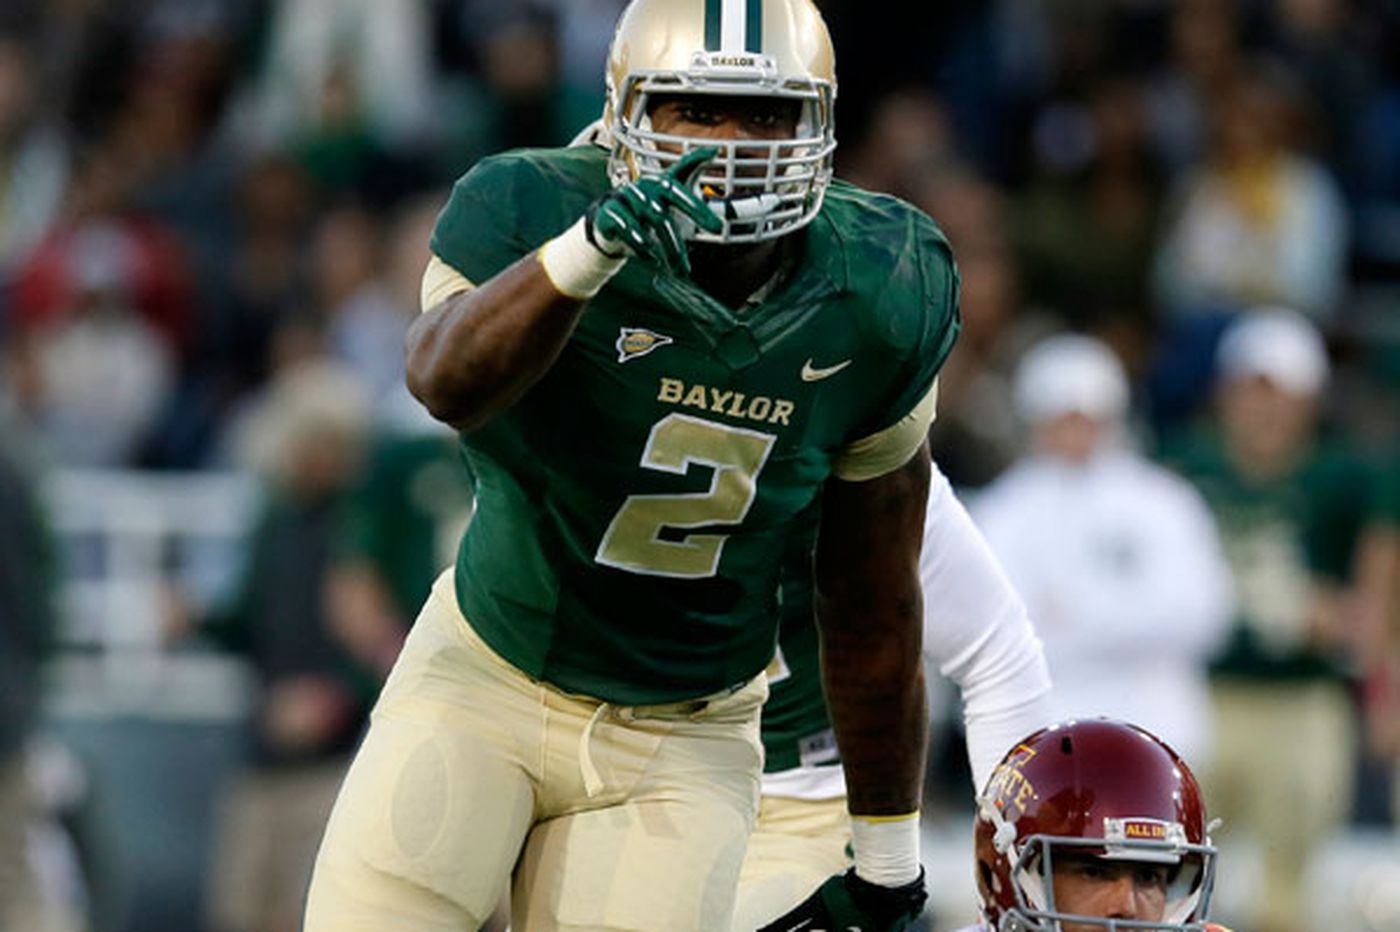 Philly's Oakman finding redemption at Baylor